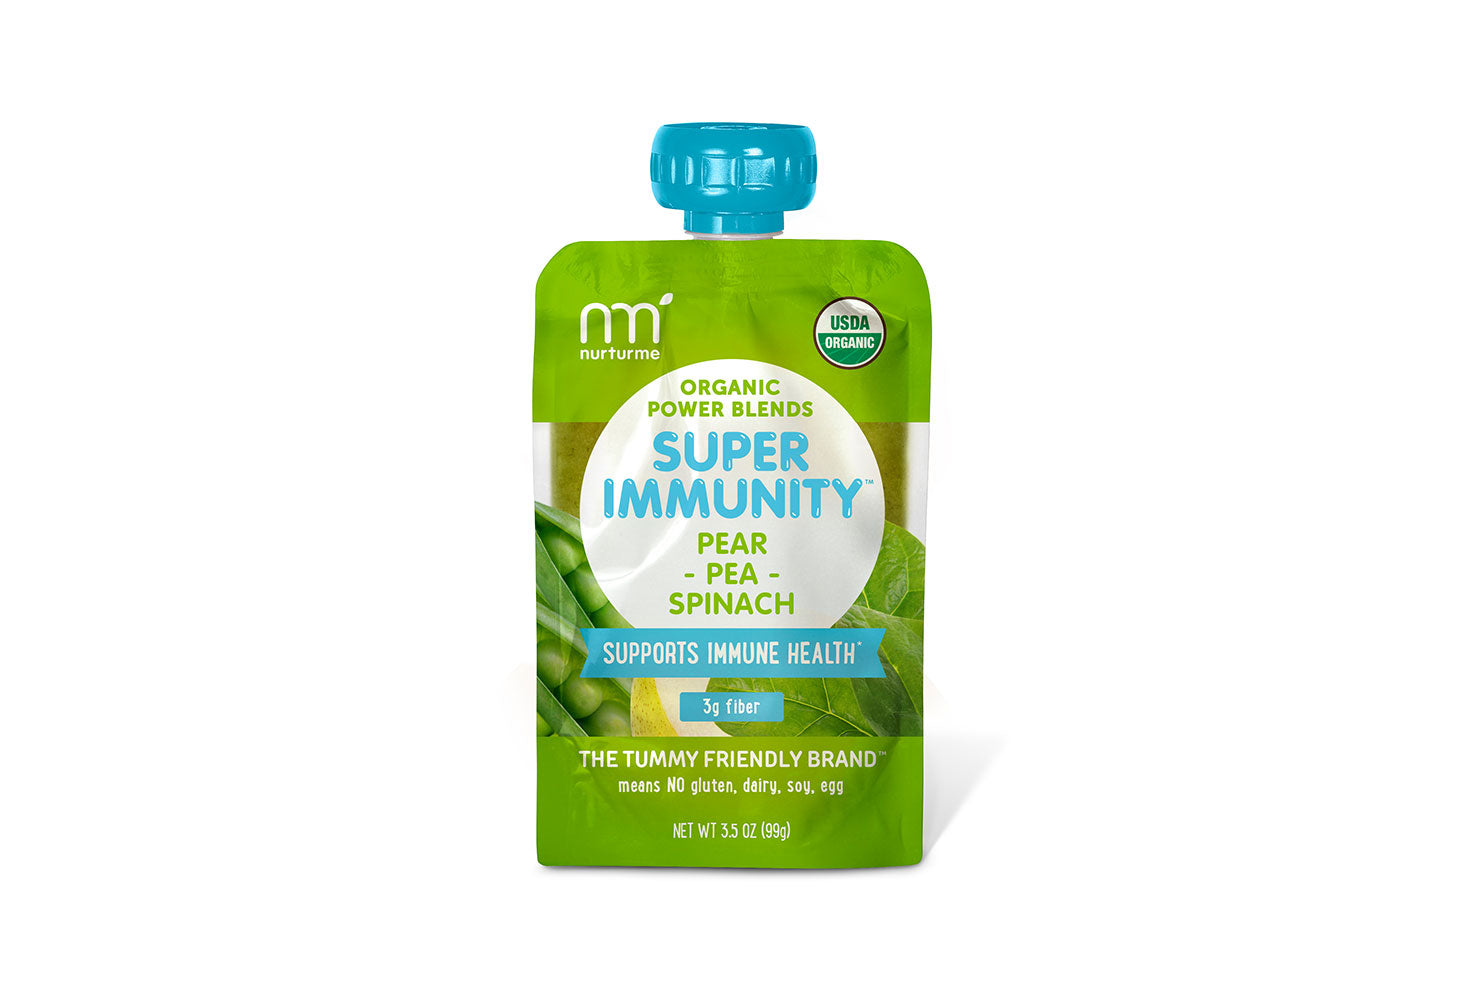 Product: Power Blends Super Immunity